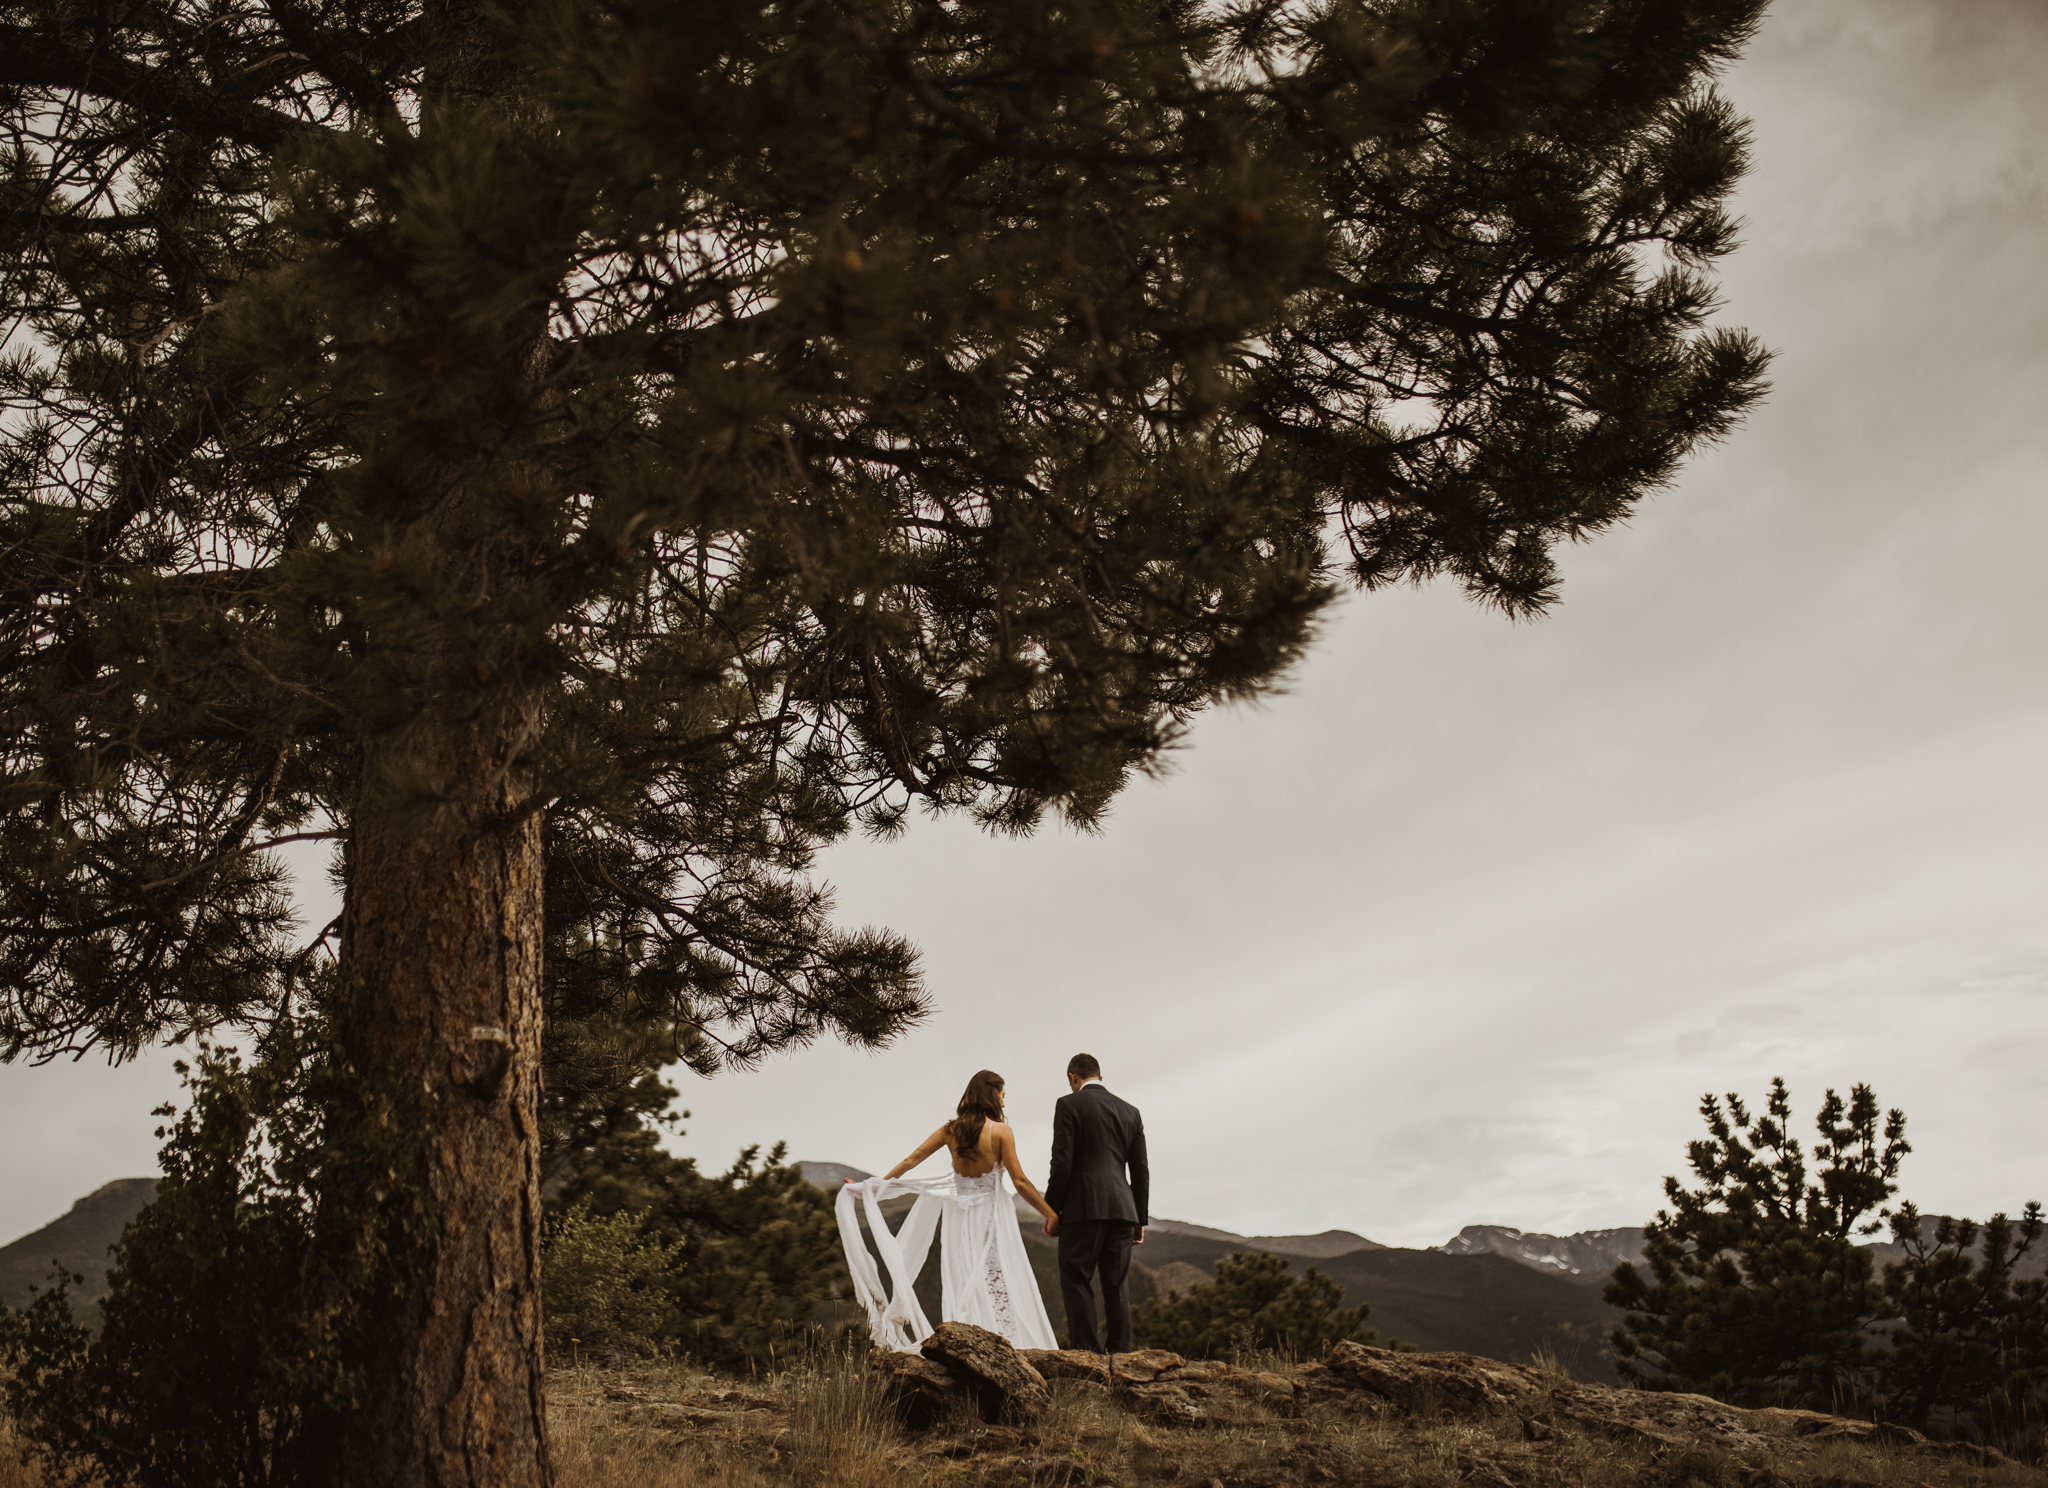 ©Isaiah + Taylor Photography - Estes National Park Adventure Elopement, Colorado Rockies-123.jpg